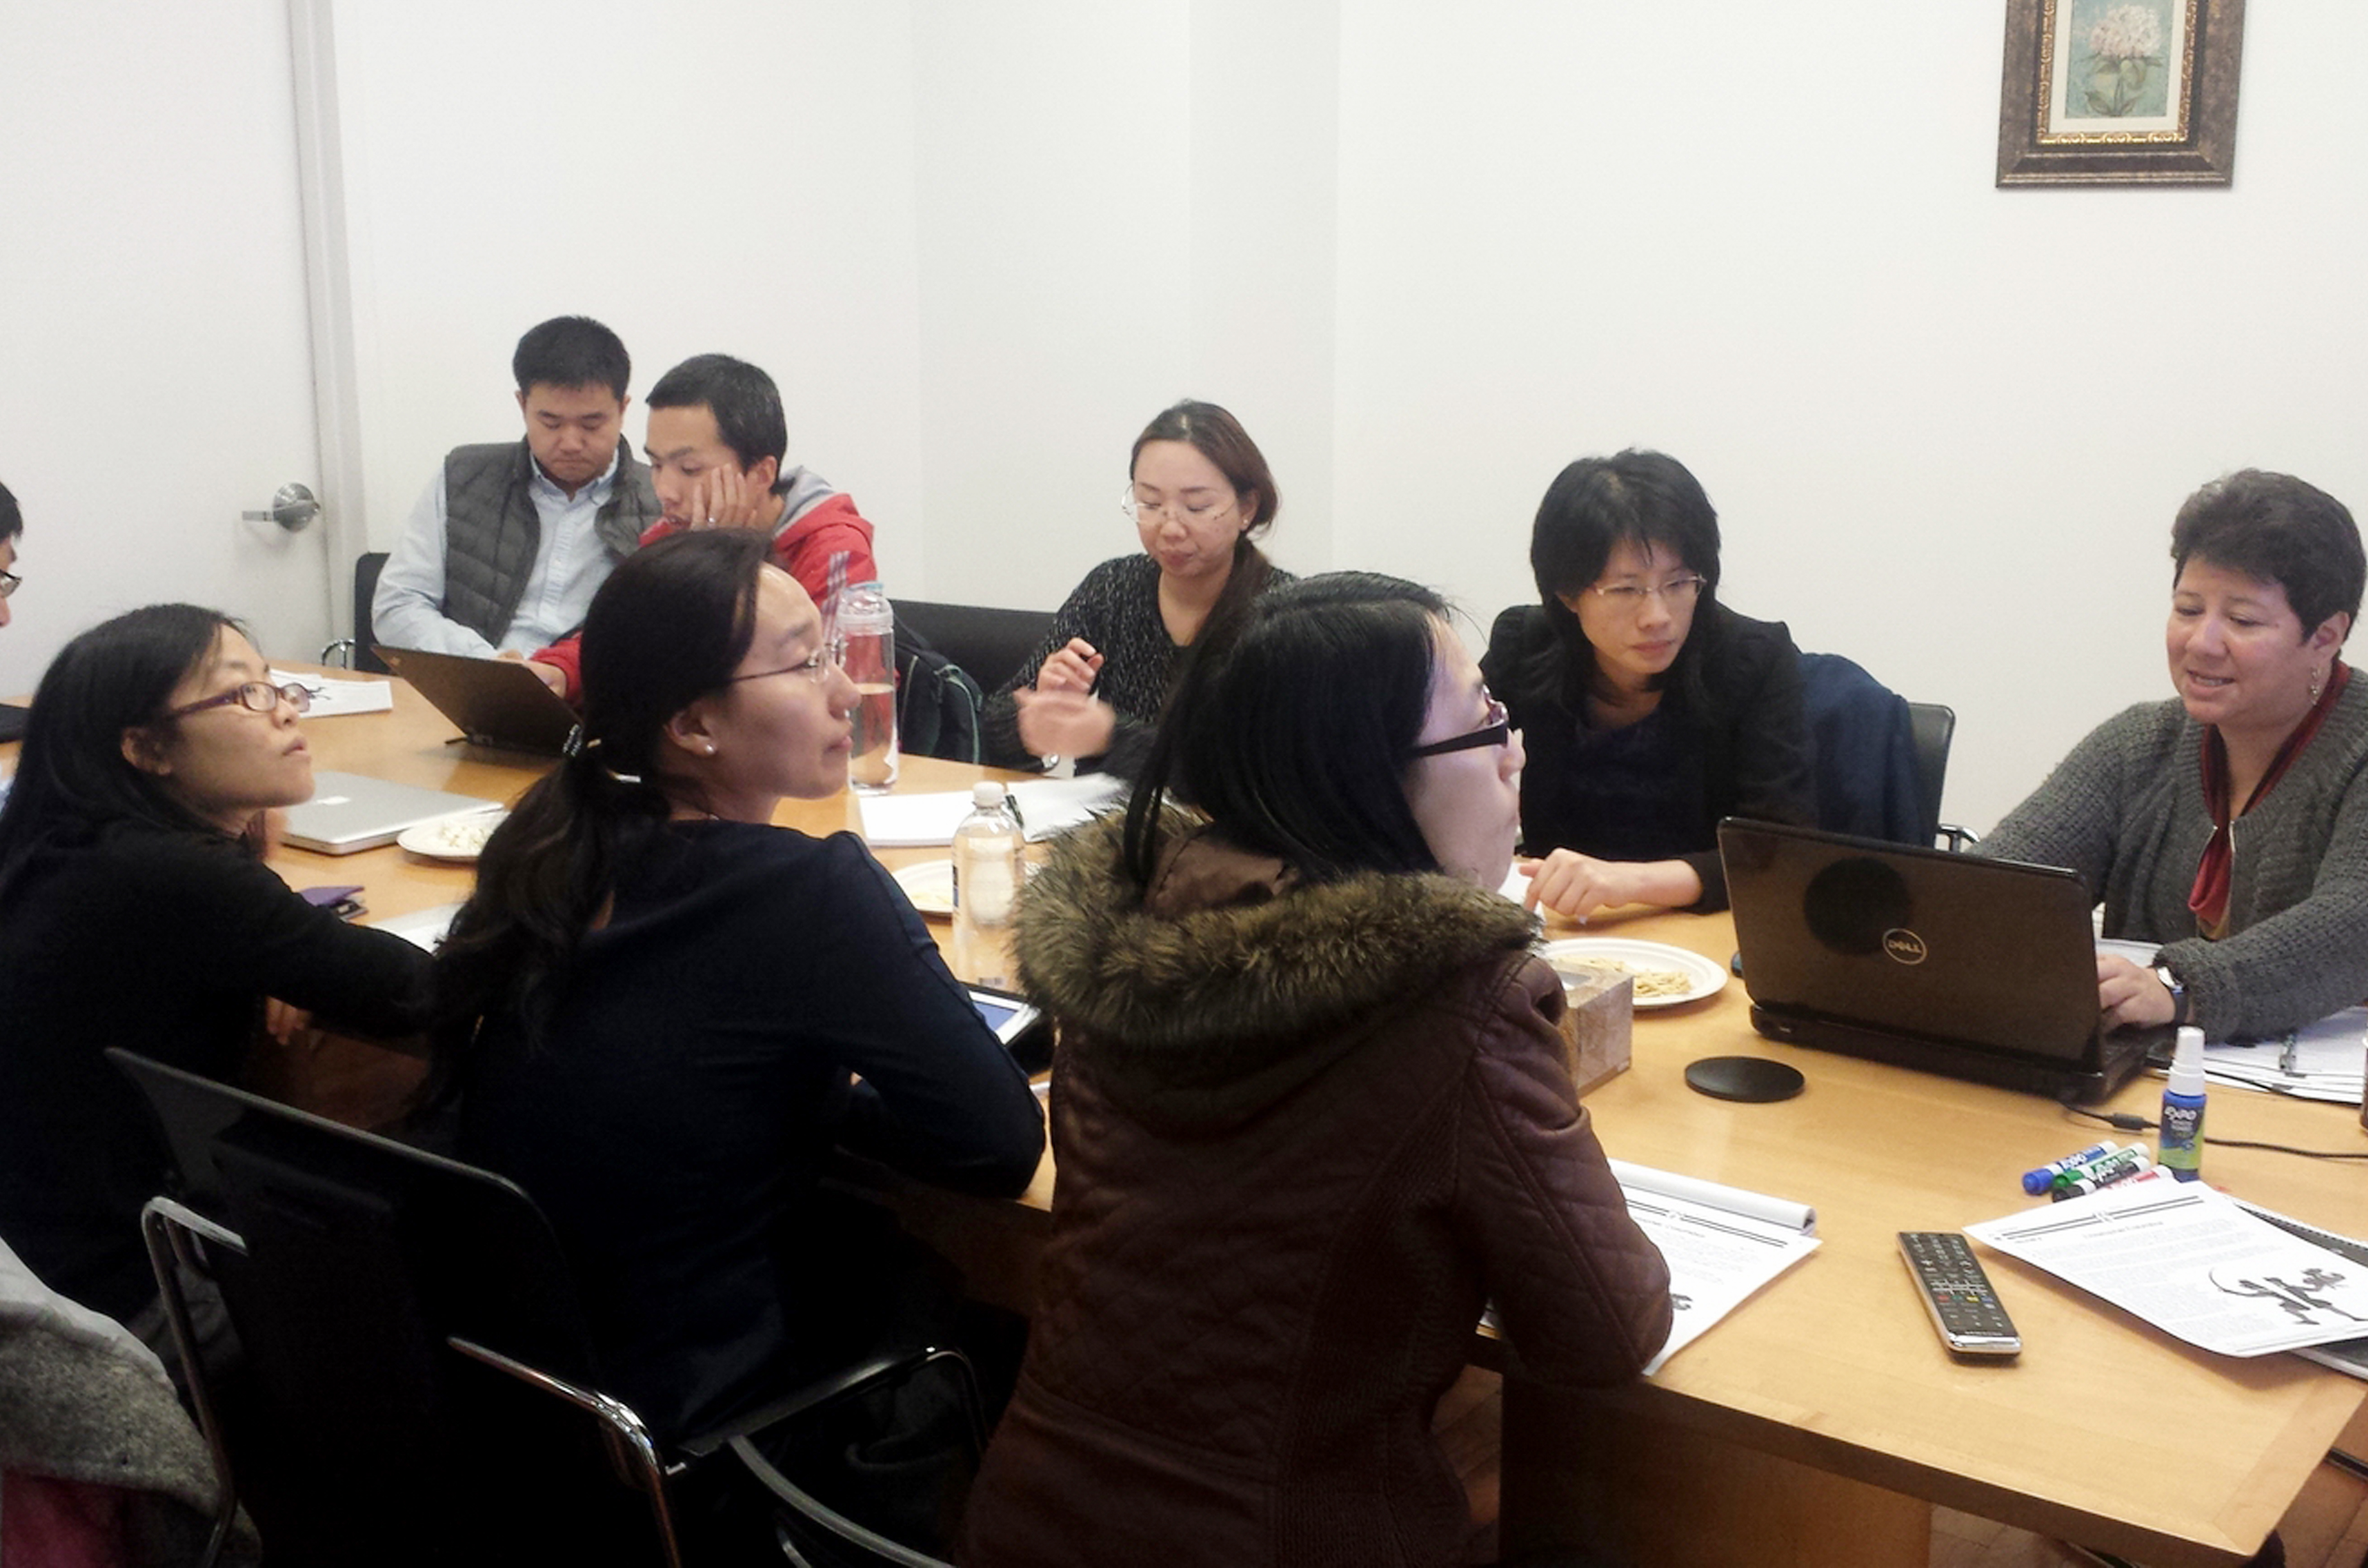 Business writing courses in new york